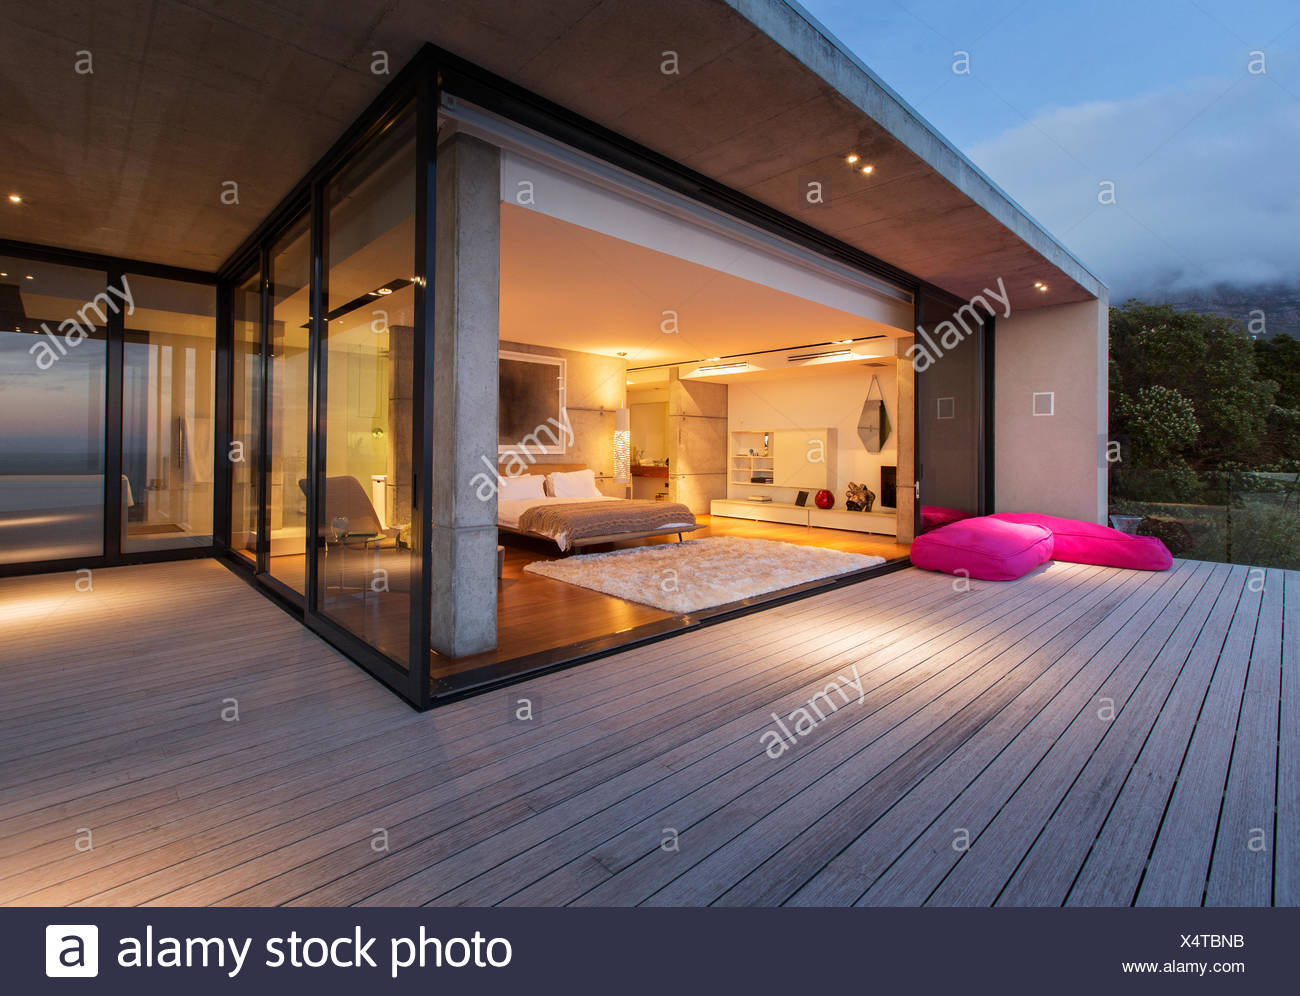 Sliding glass doors onto bedroom of modern house - Stock Image